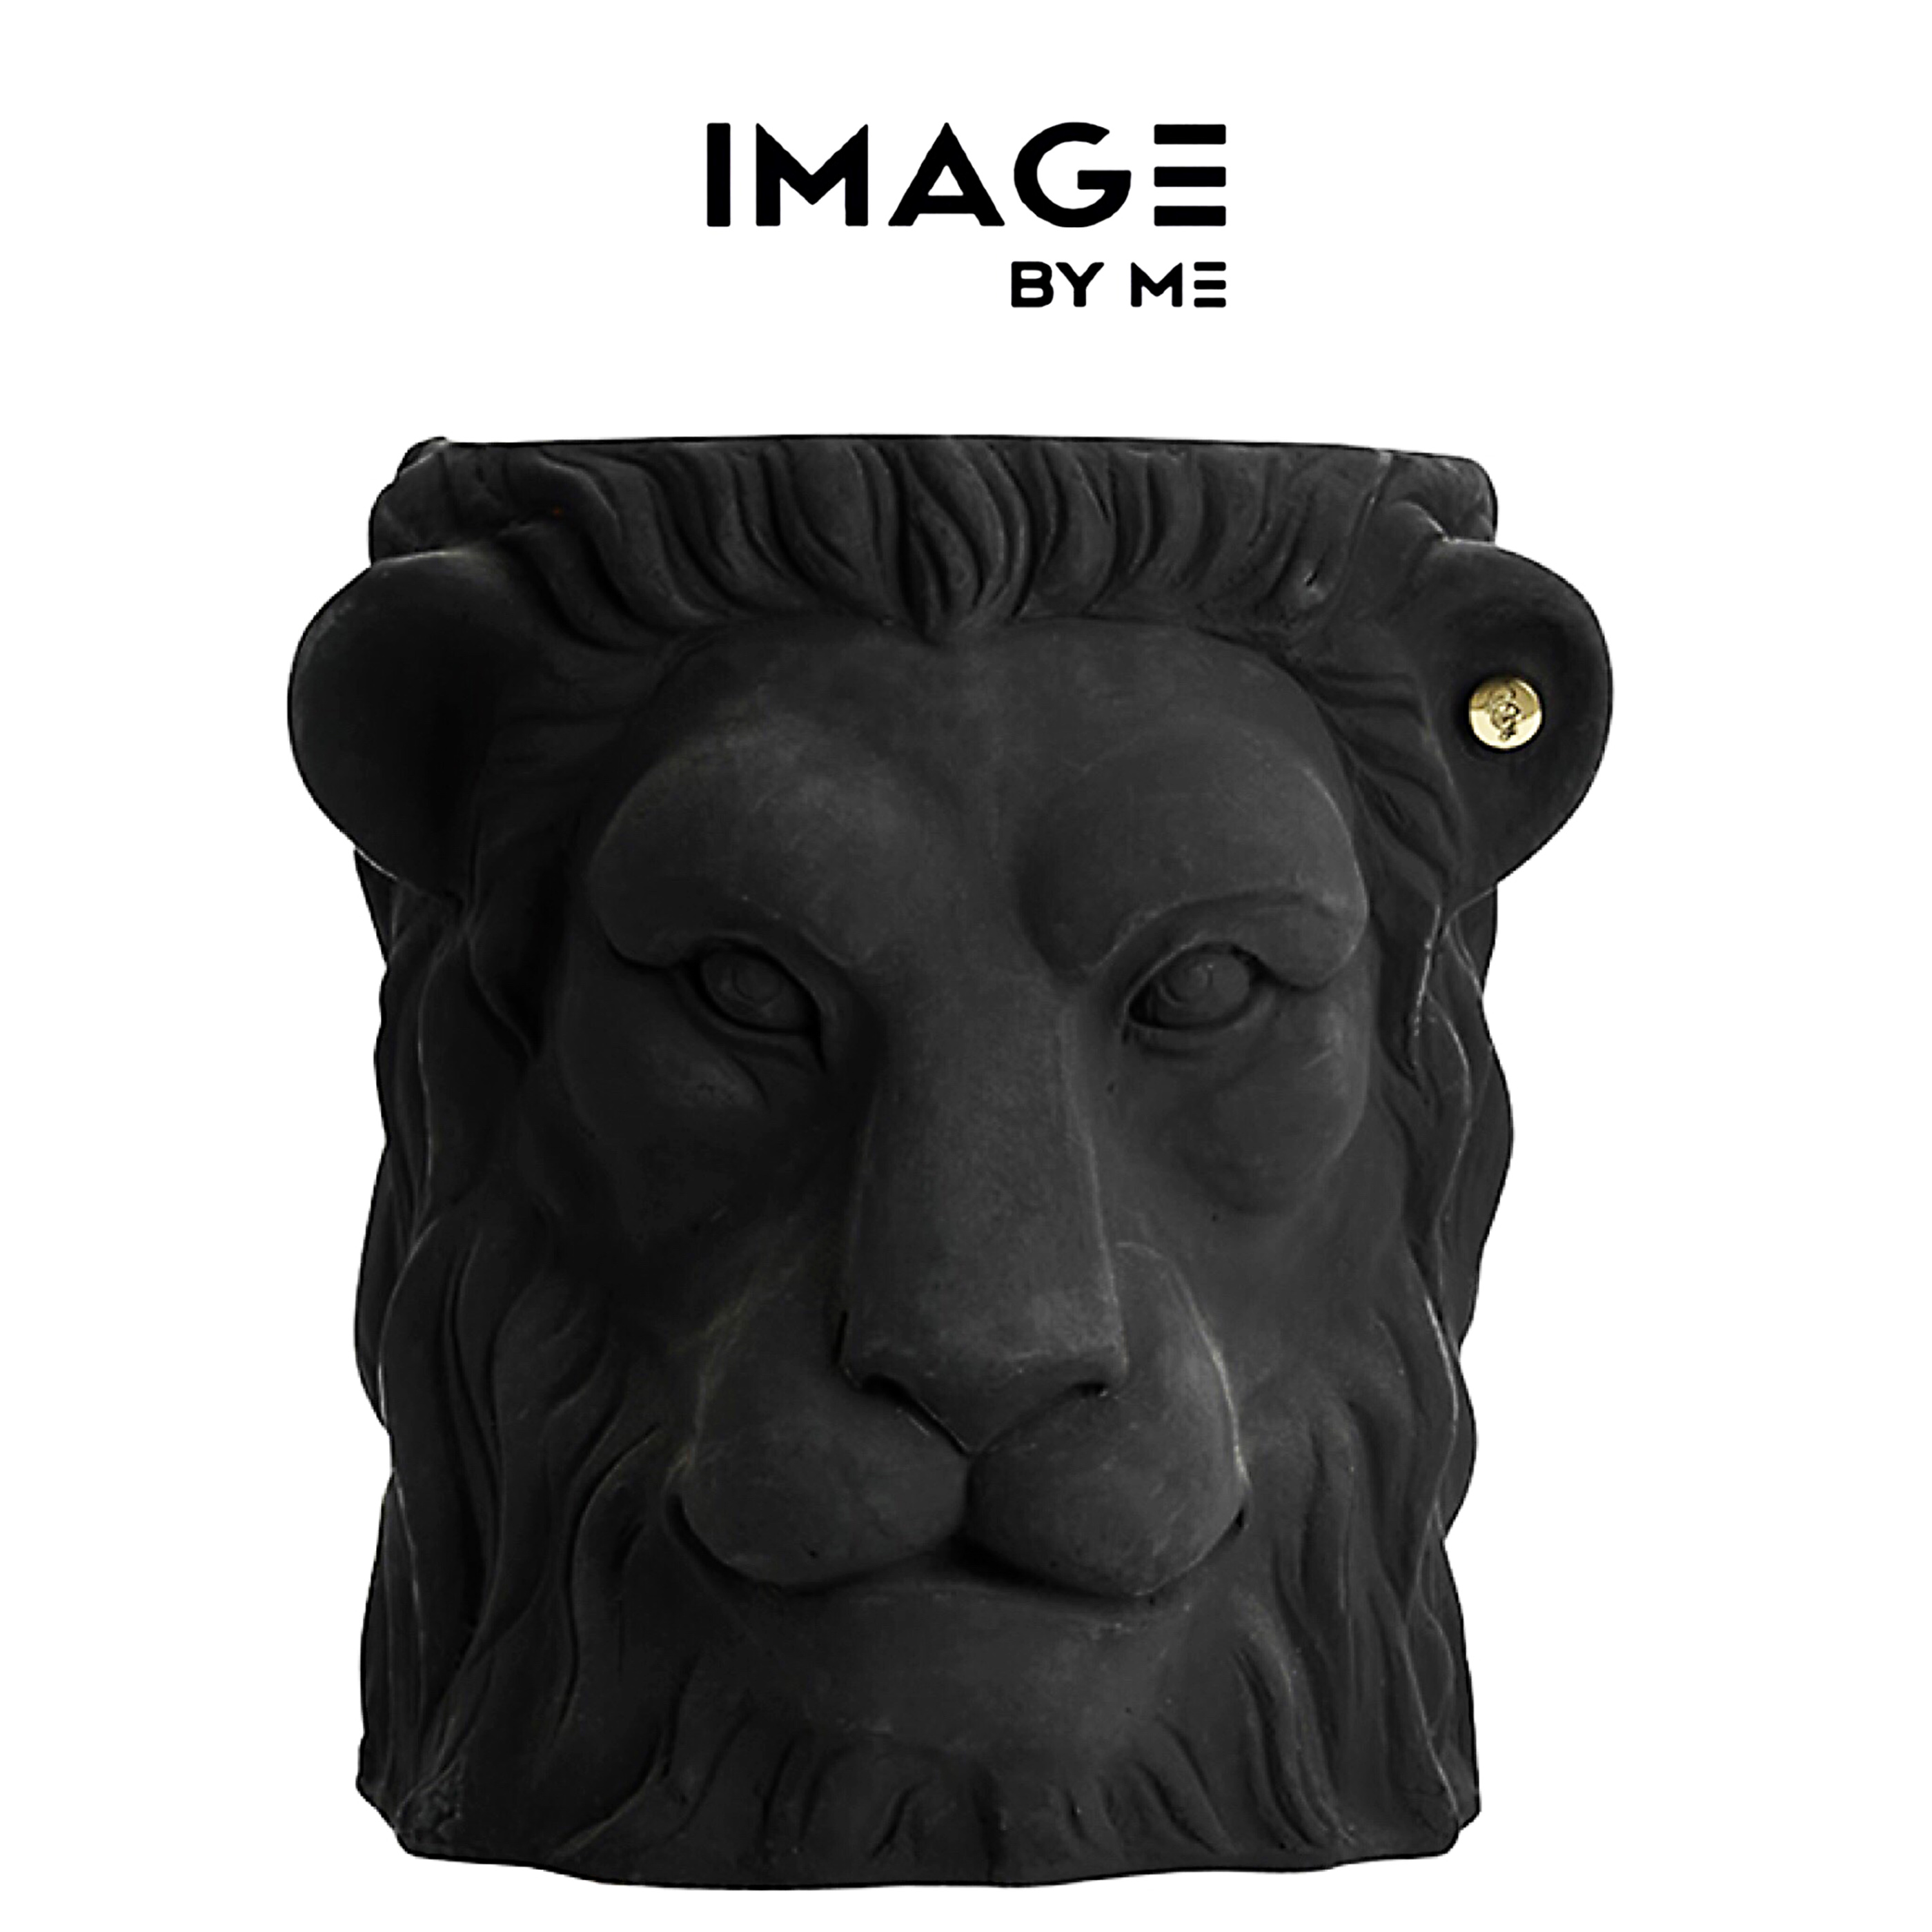 image by me lion pot